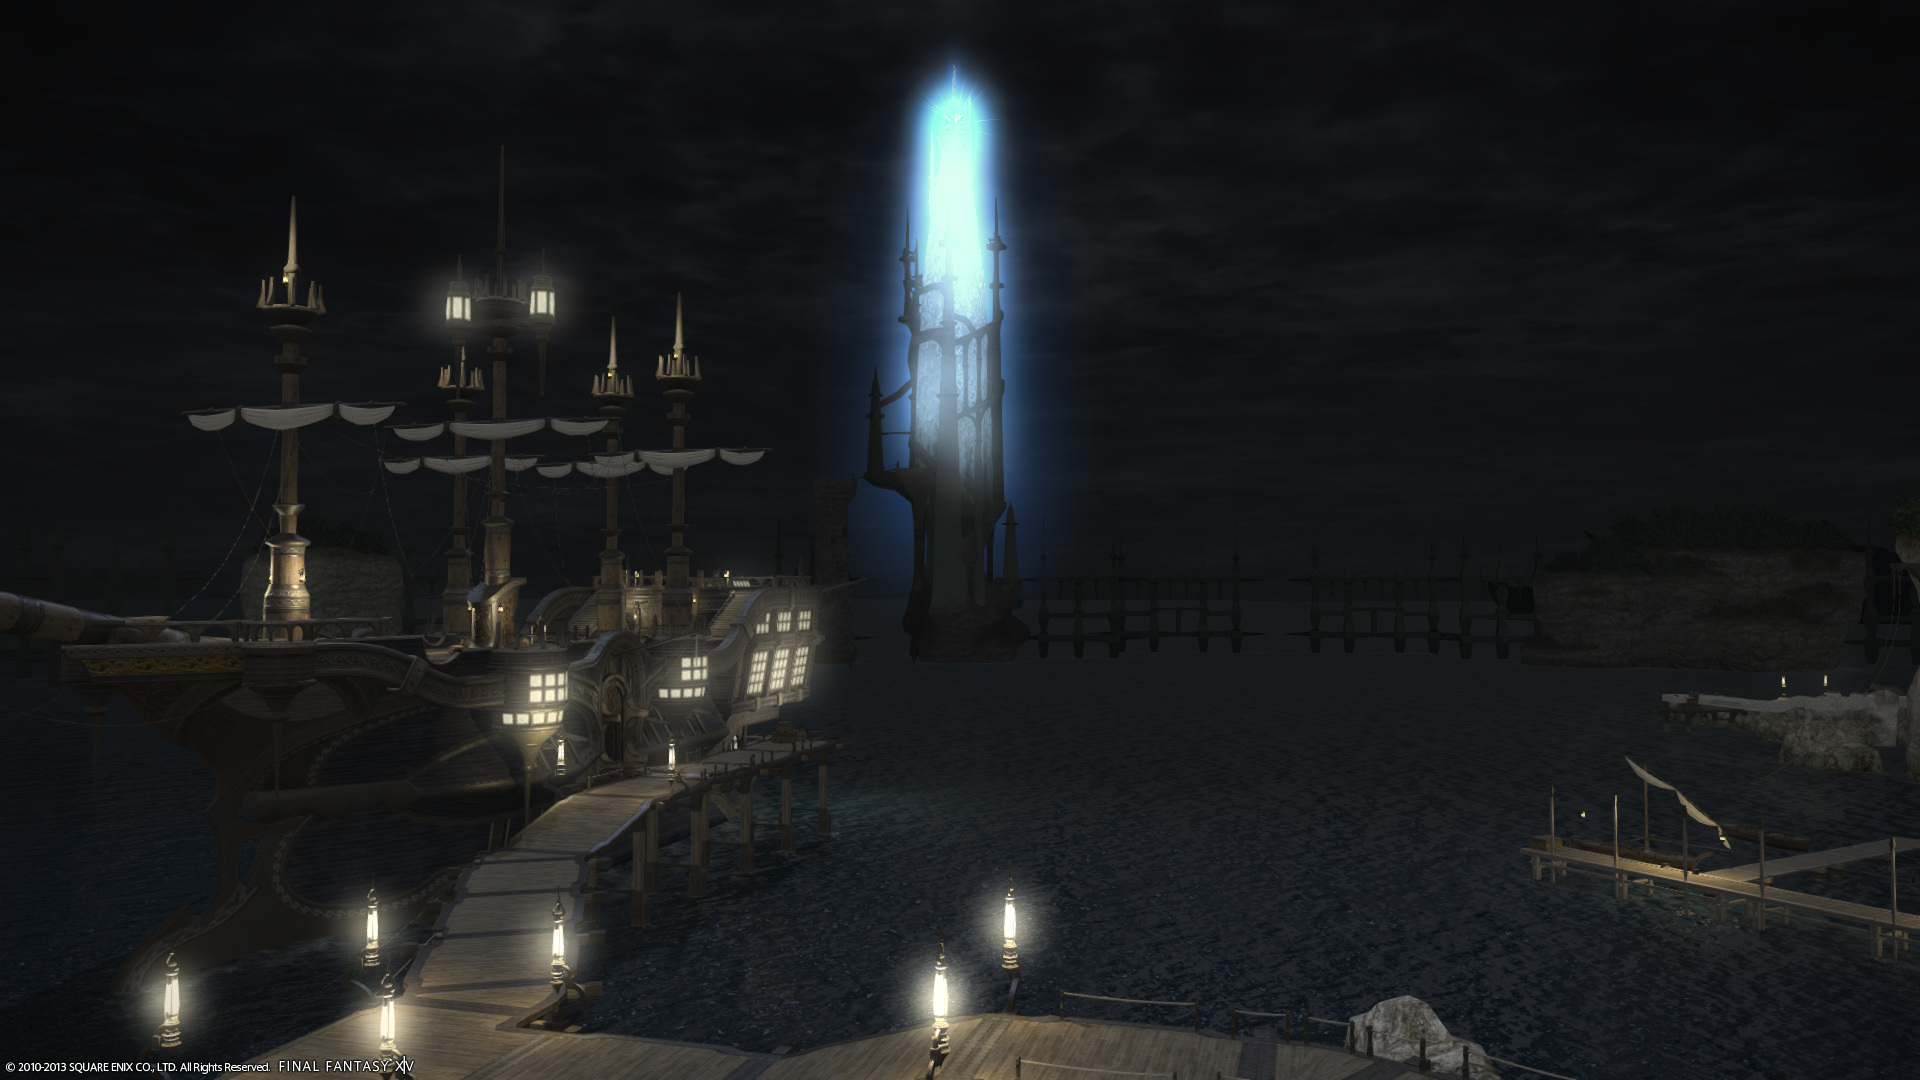 Final Fantasy XIV: A Realm Reborn - thats quite the lighthouse you have there